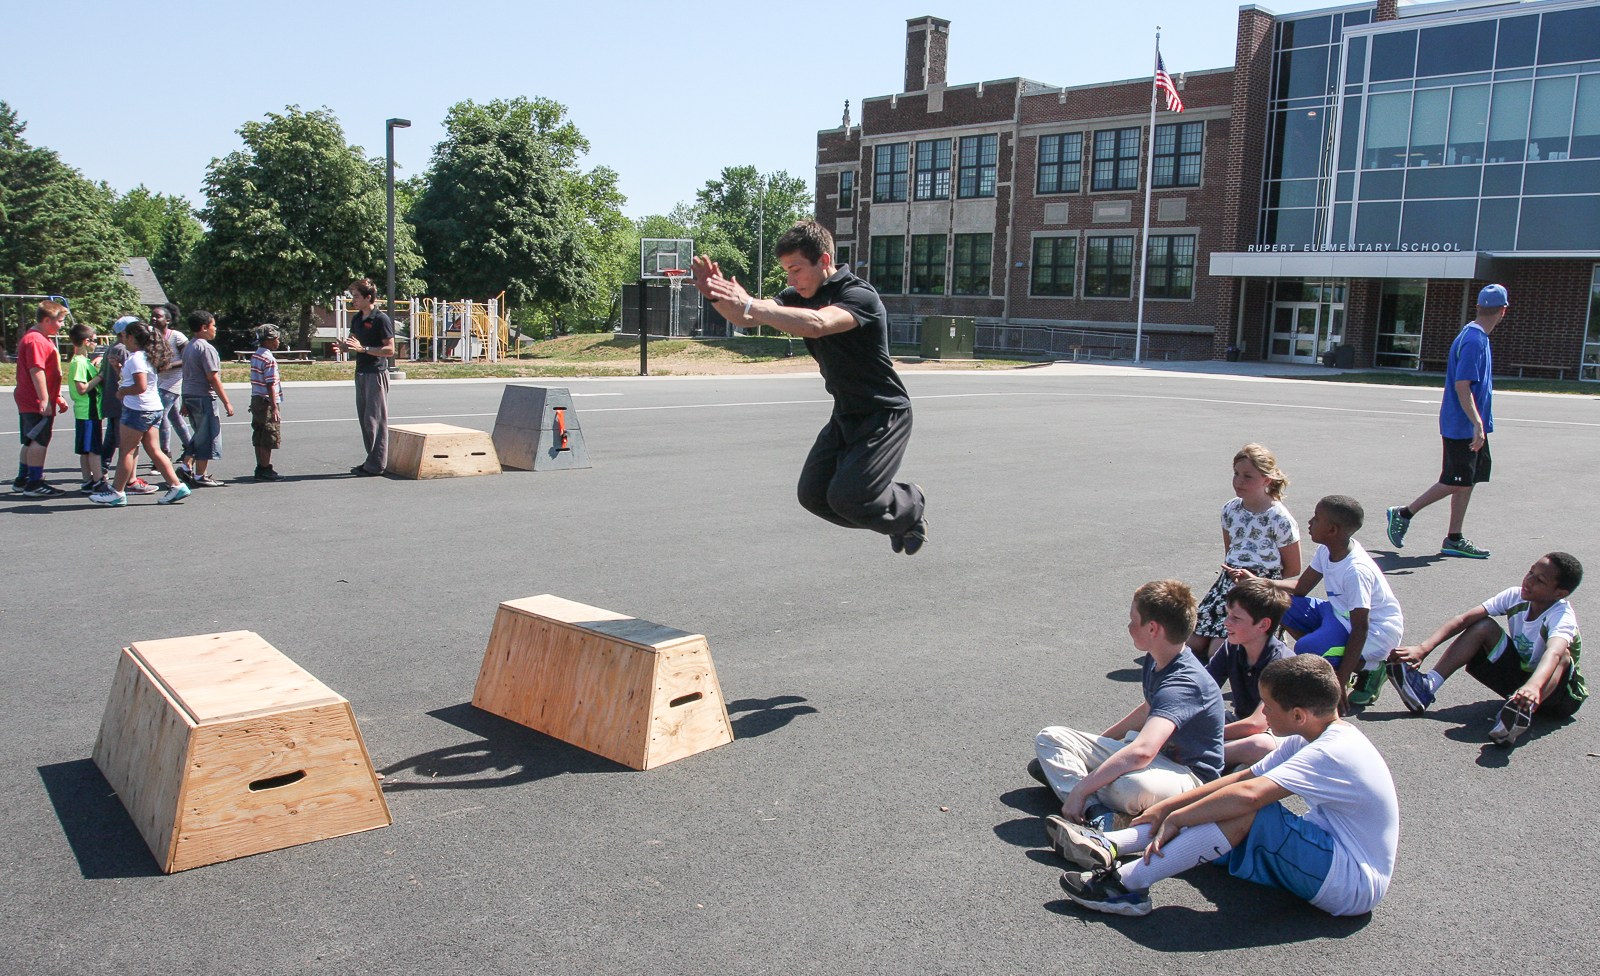 parkour students move through obstacles at rupert elementary